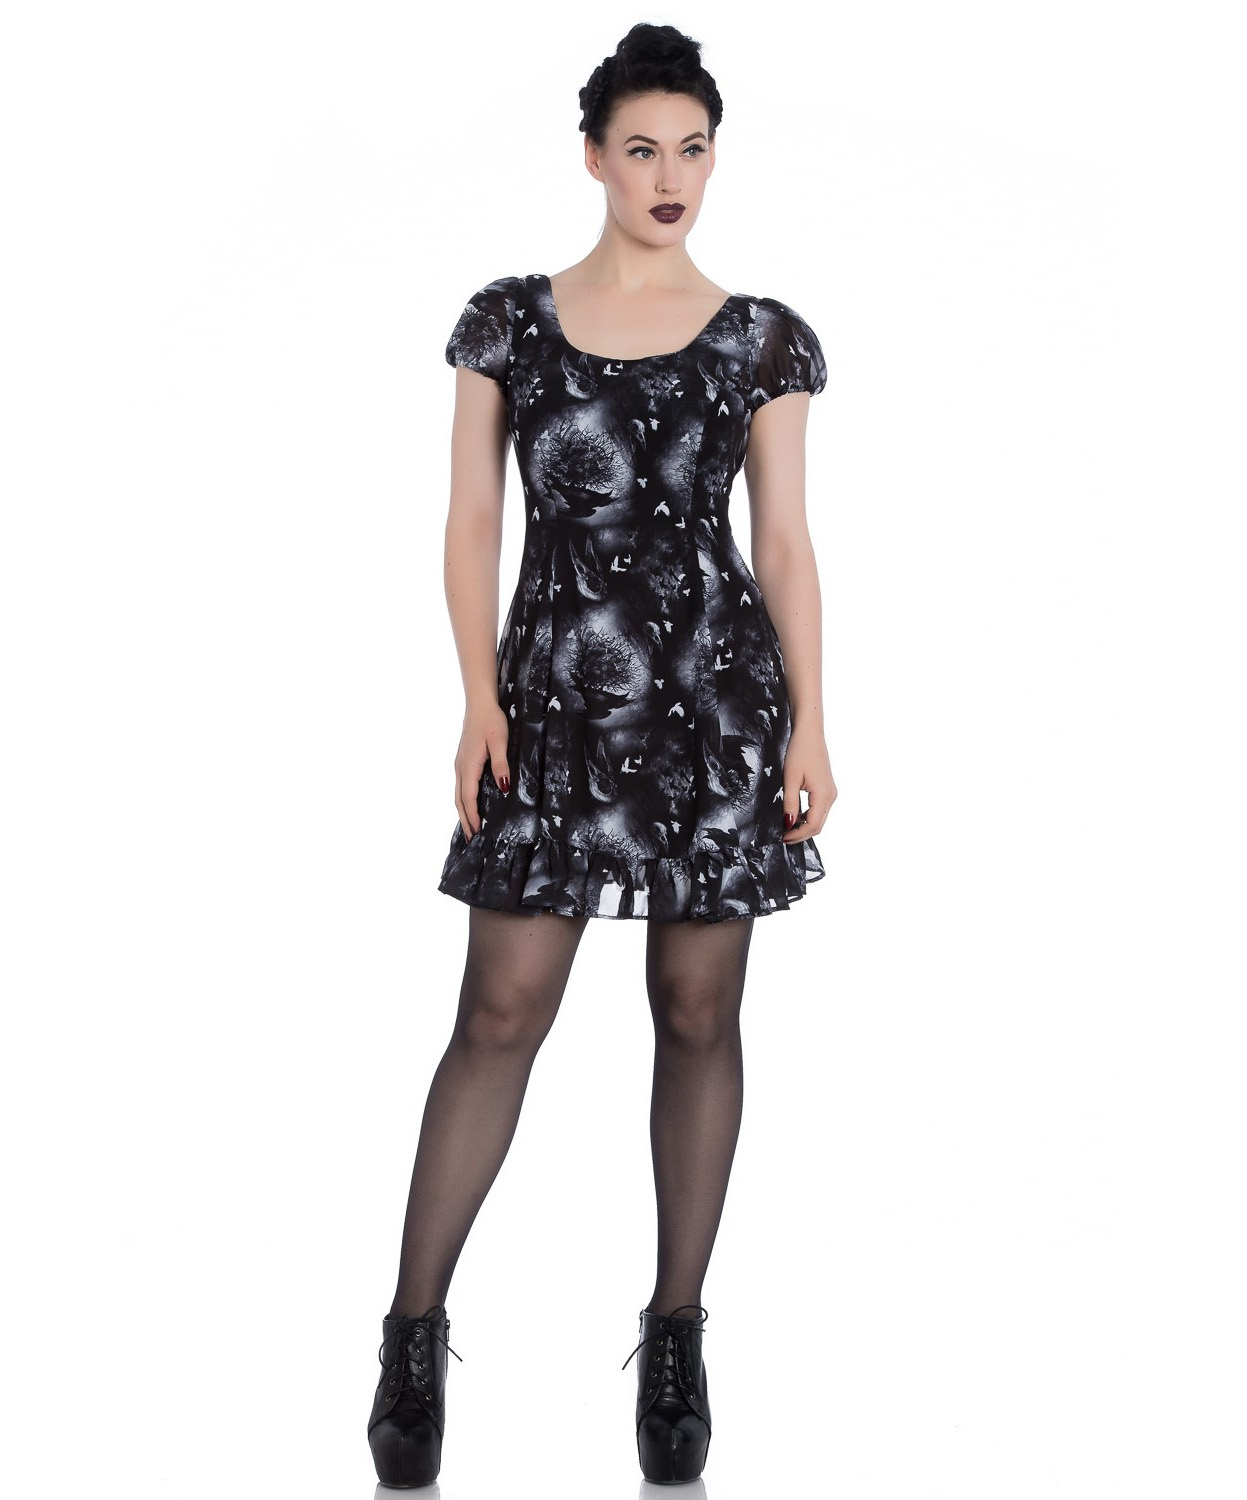 Hell-Bunny-Alchemy-Gothic-Black-Skater-Mini-Dress-ASH-Crows-Skulls-All-Sizes thumbnail 15